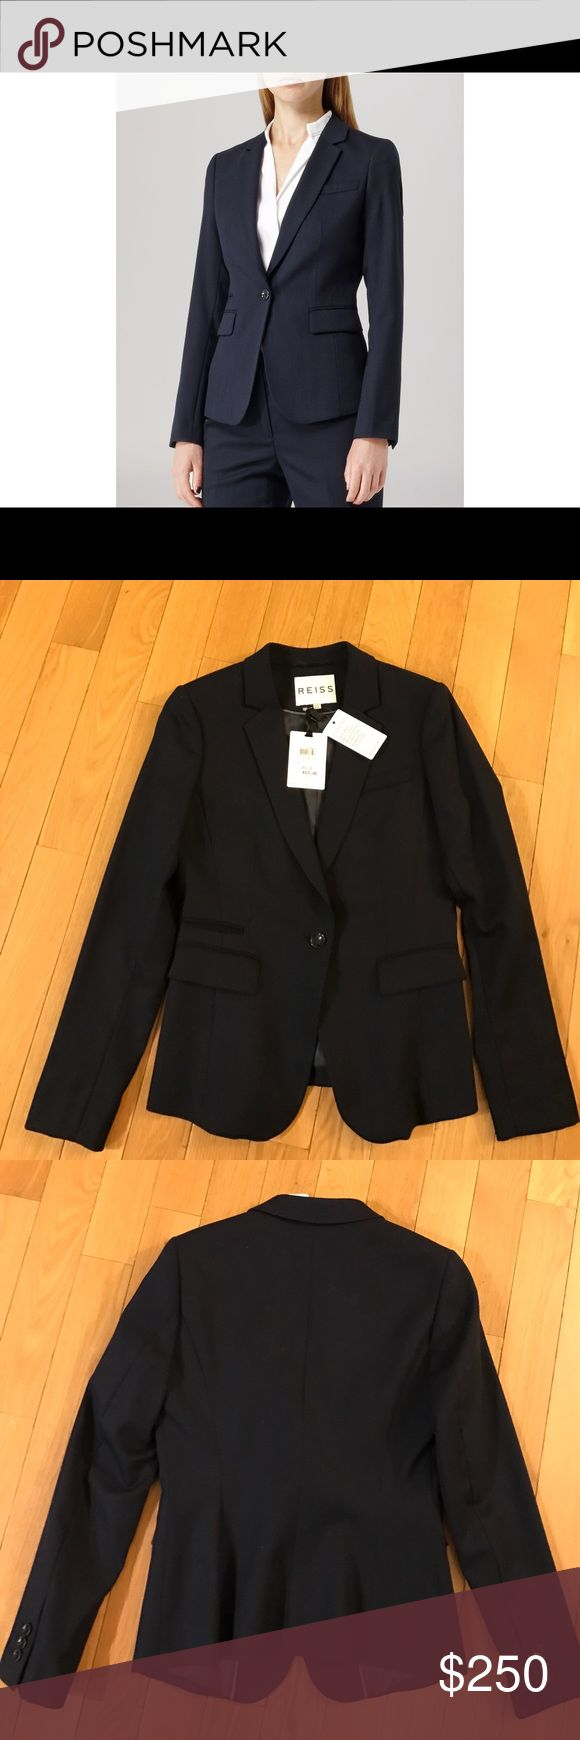 NWT Reiss Theo Tailored Navy Blue Jacket US 6 Brand new Reiss Theo women's navy blue tailored jacket - size US 6.  Bought this recently but it was too small and I missed the return window. Reiss Jackets & Coats Blazers